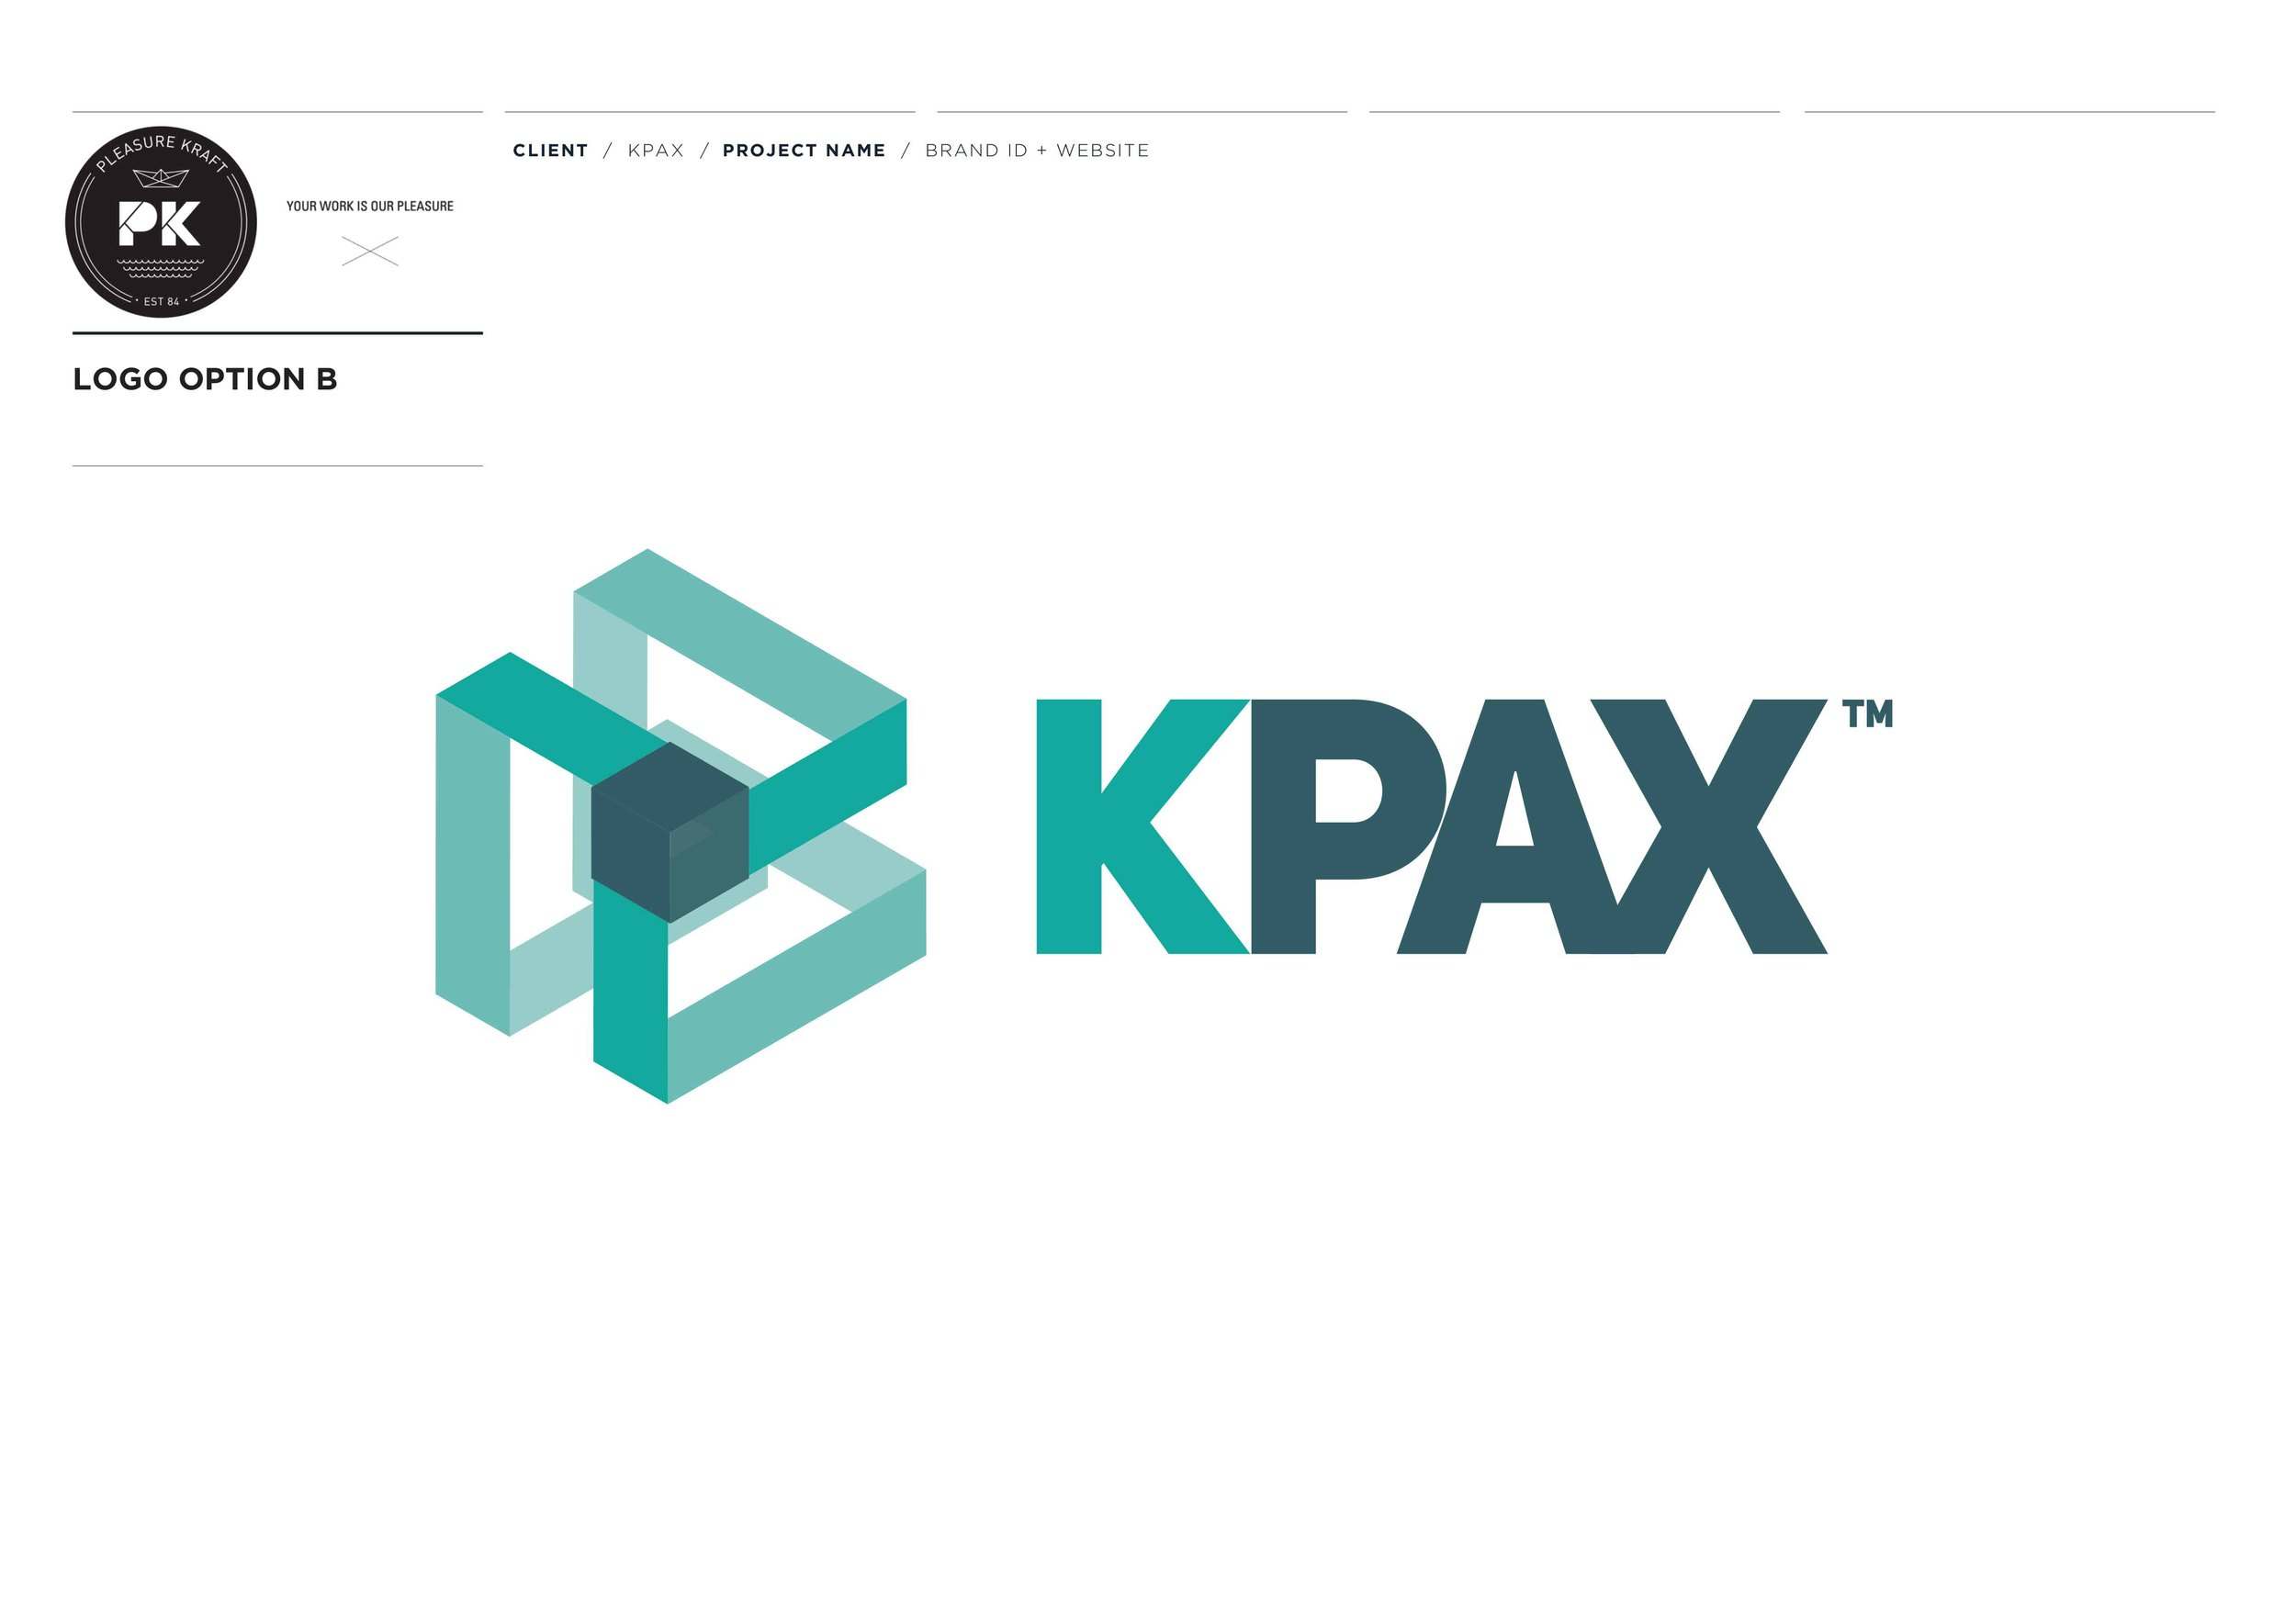 KPAX LOGO+GRAPHIC CONCEPTS PRES-5 copy.jpg